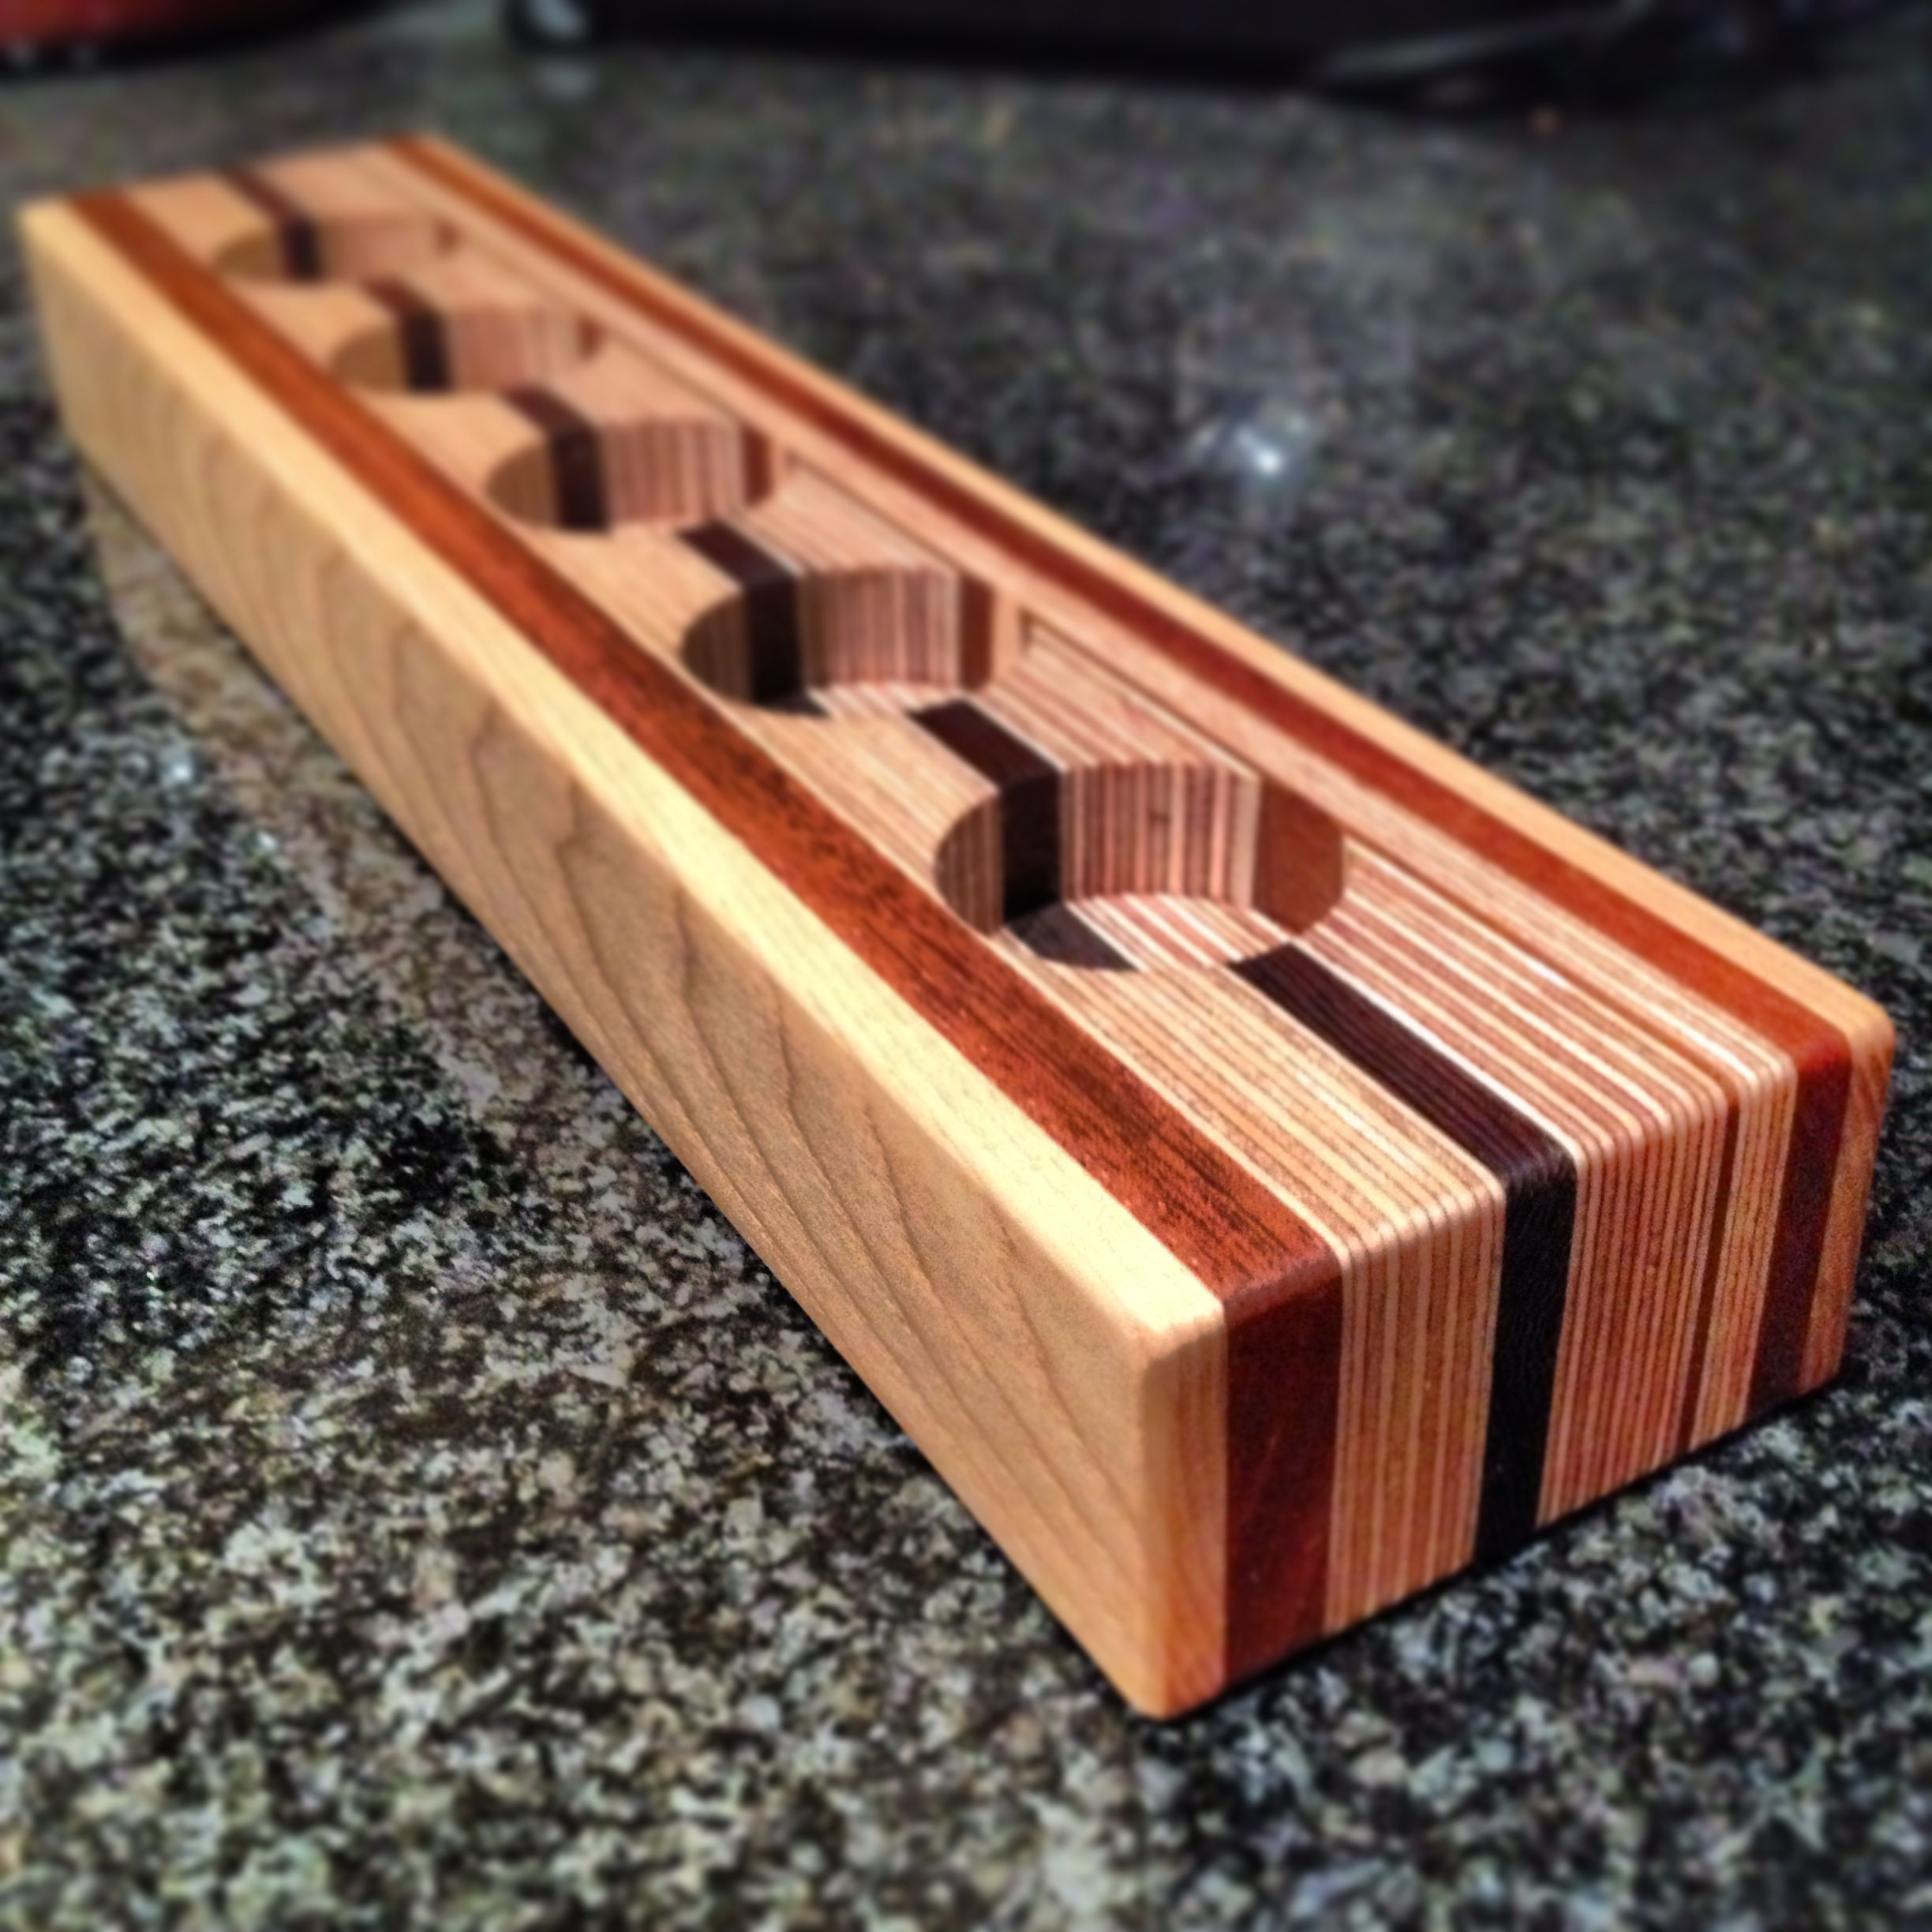 Woodworking Projects Plans: Candle Holder Made Form Layers Of Plywood, Mahogany, Wenge